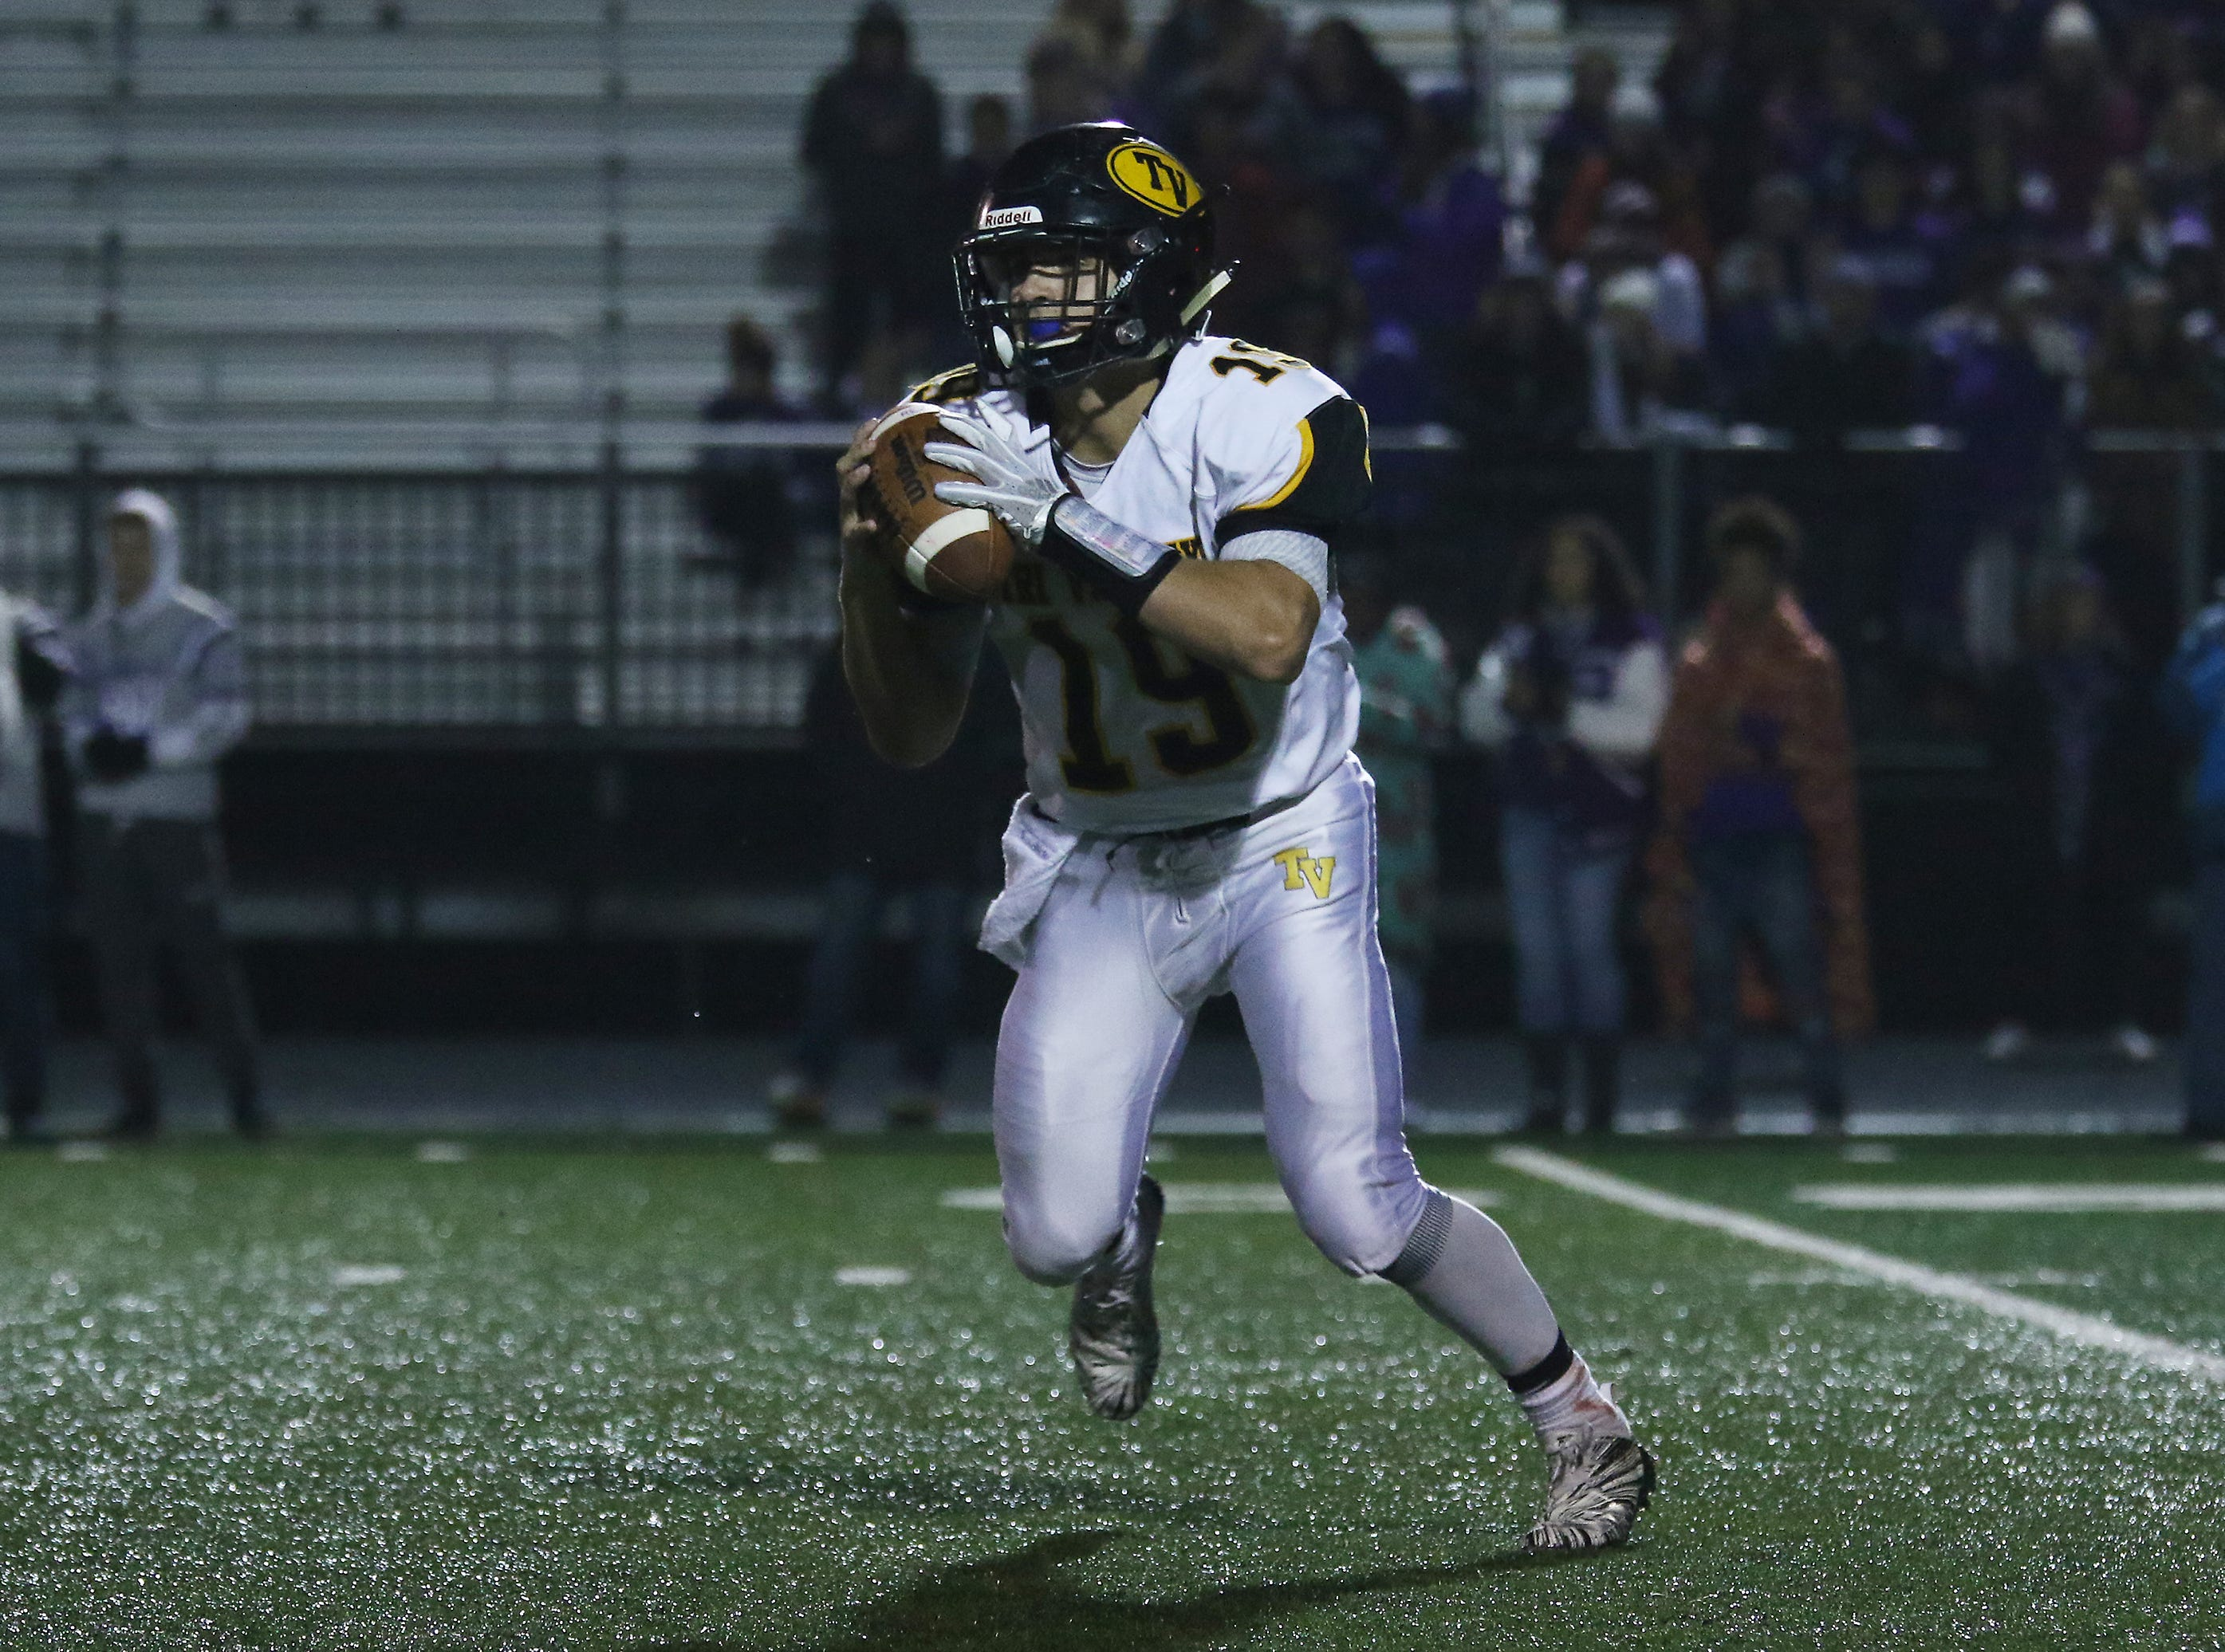 Tri-Valley's Aiden Fritter scrambles against Barberton.